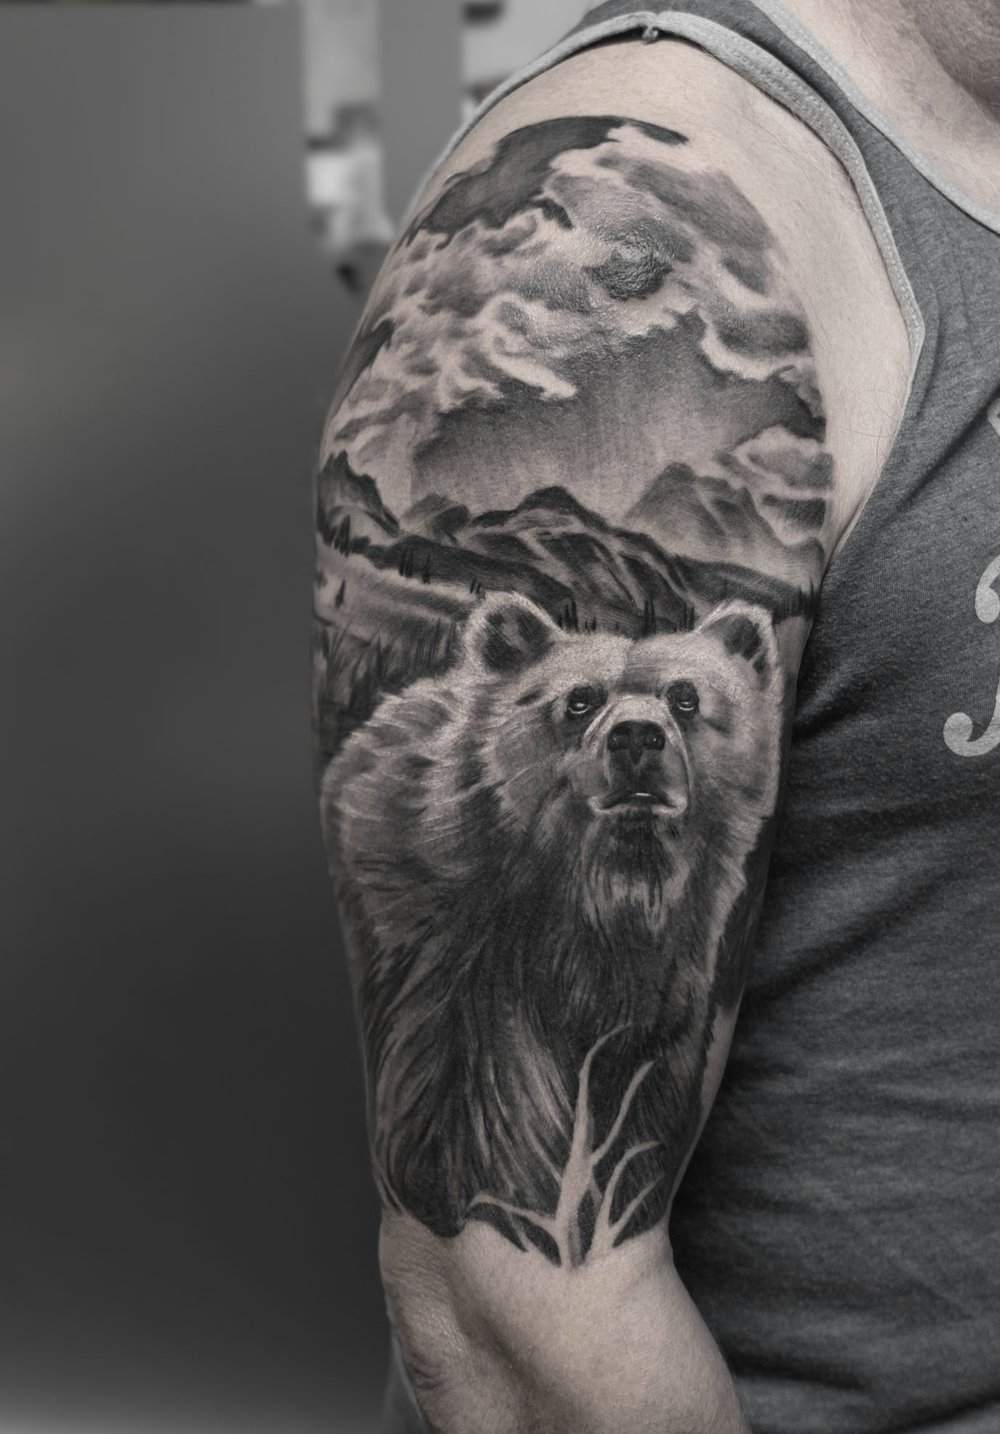 Custom+Black+and+Gray+Realism+Grizzley+Bear+Tattoo+by+Greg+at+Certified+Tattoo+Studios+Denver+Co.jpg